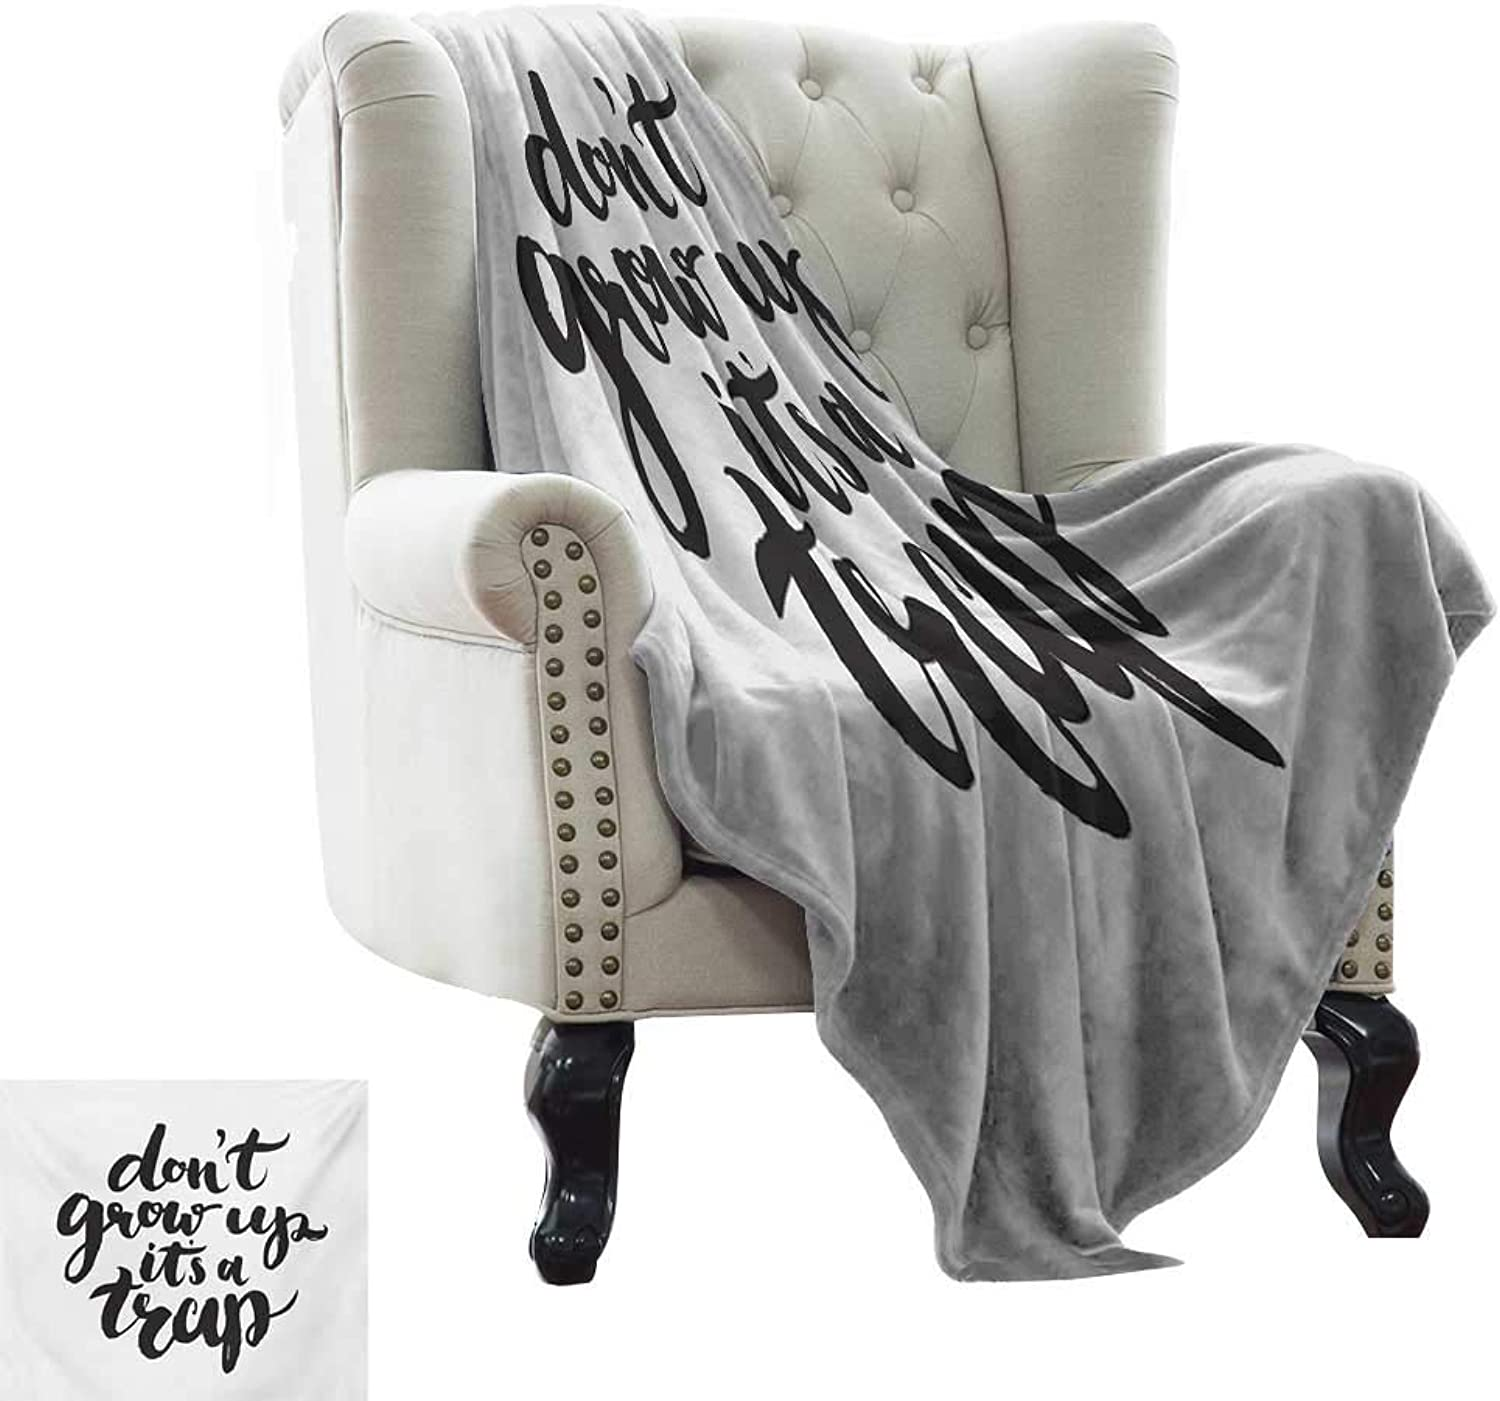 Acelik Printing Blanket Quote Funny Saying for Kids Do Not Grow Up It is a Trap Hand Written Style Plush Throw Blanket W35 x L60 Inch Charcoal Grey and White